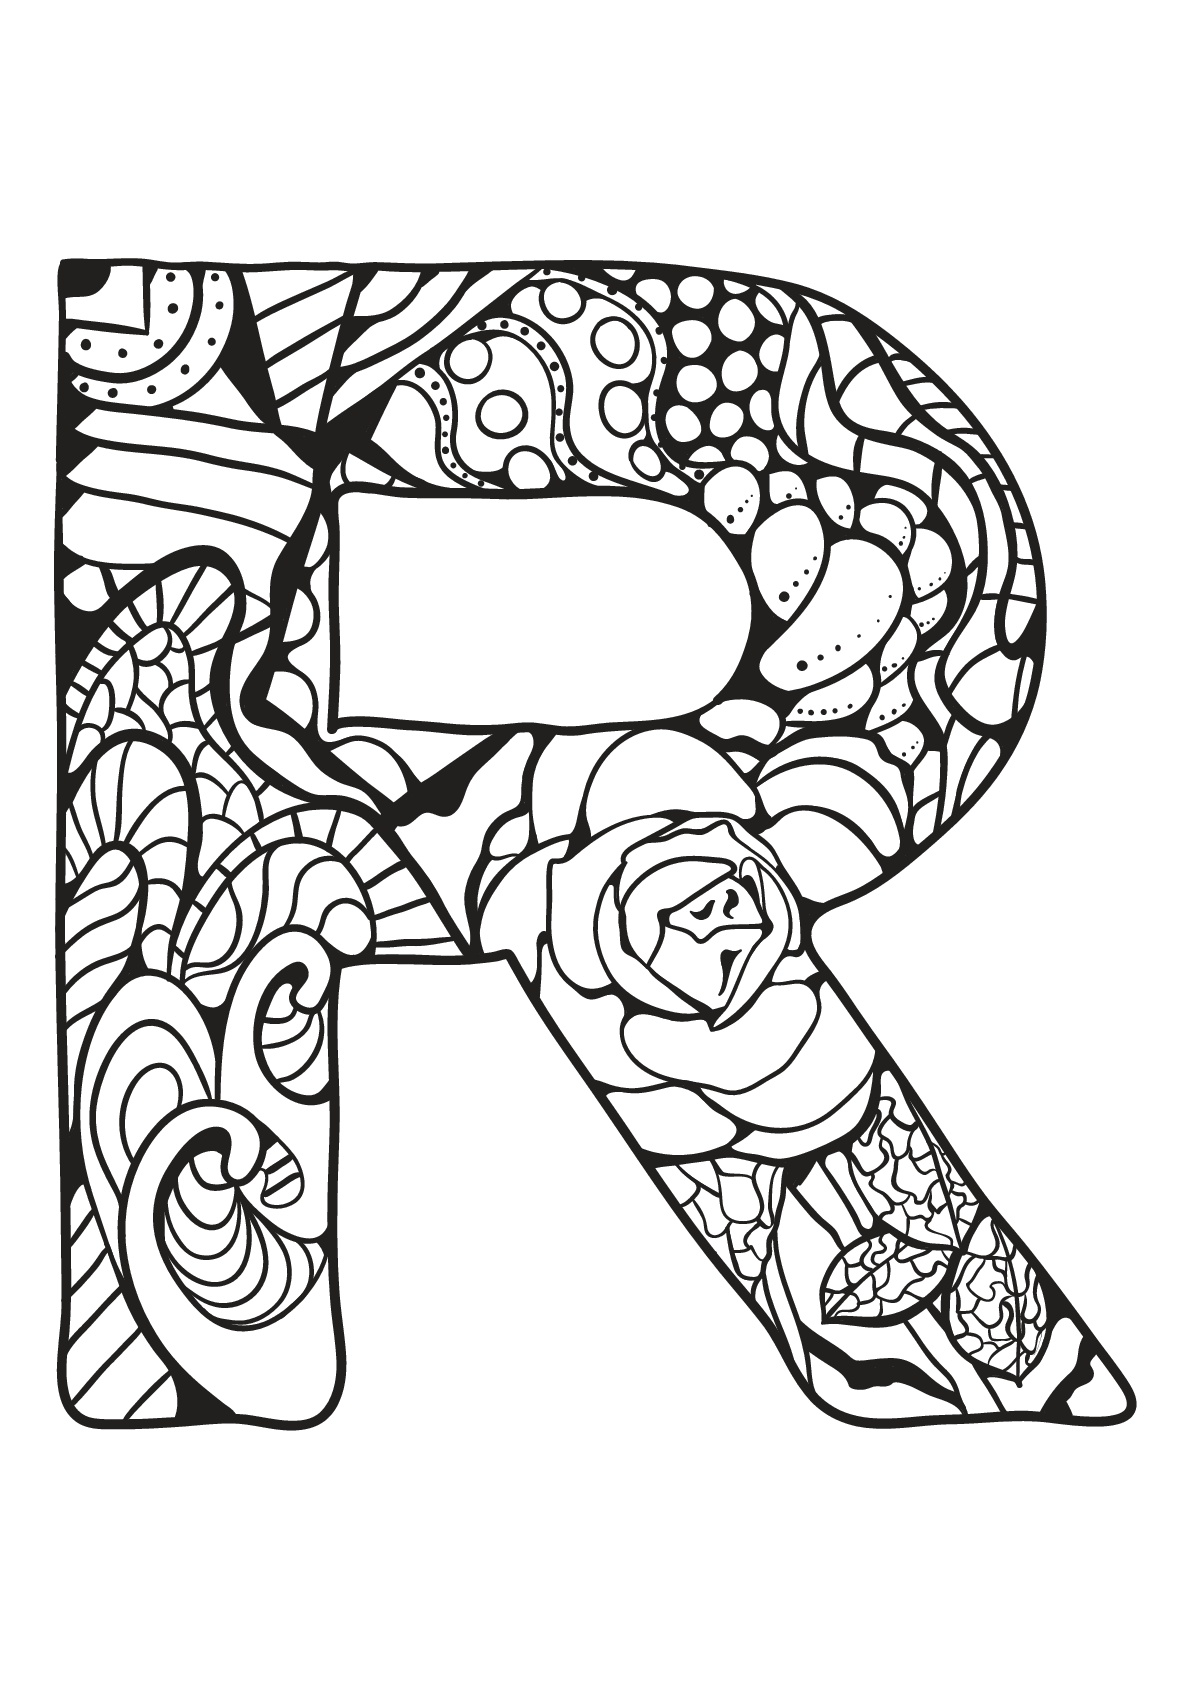 Alphabet To Color For Kids R Alphabet Kids Coloring Pages